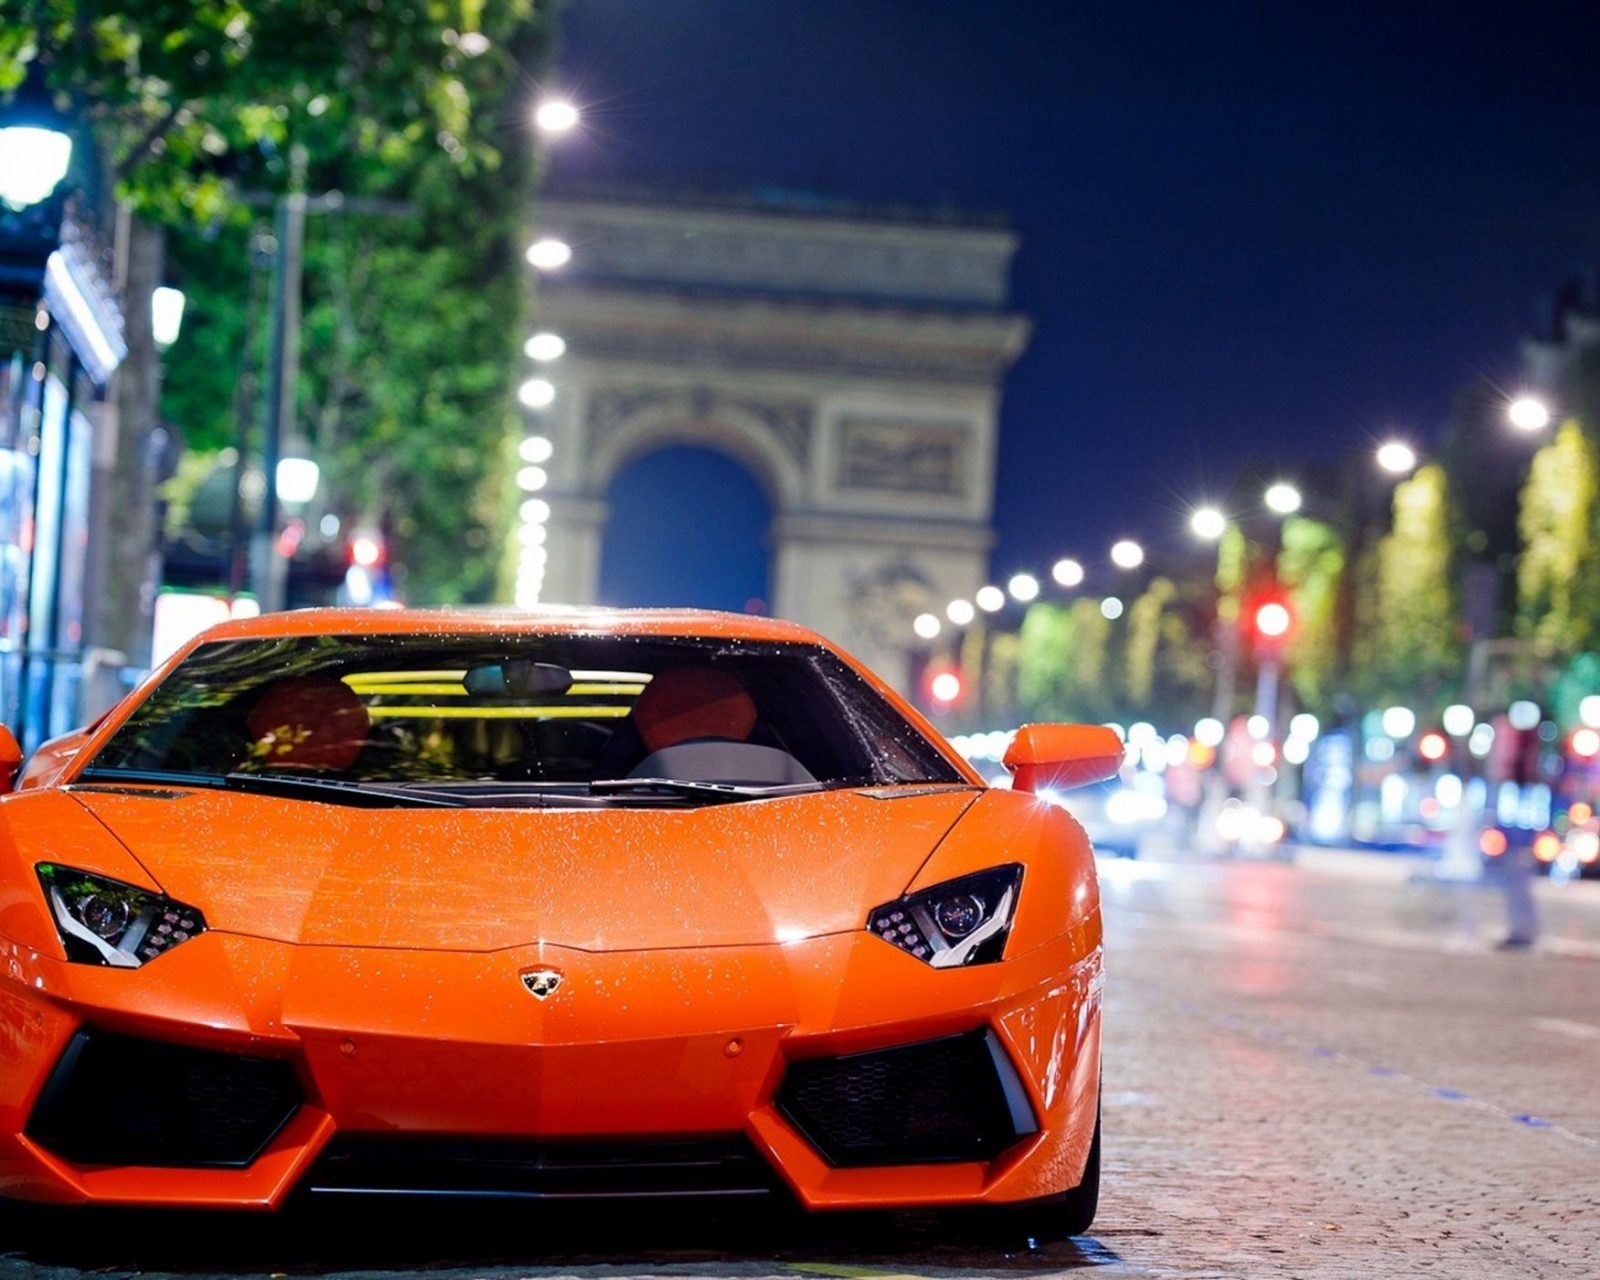 Popular Wallpaper Night Lamborghini - Lamborghini-Aventador-Night-Shot-Wallpaper-1600x1280  Pic-467360.jpg